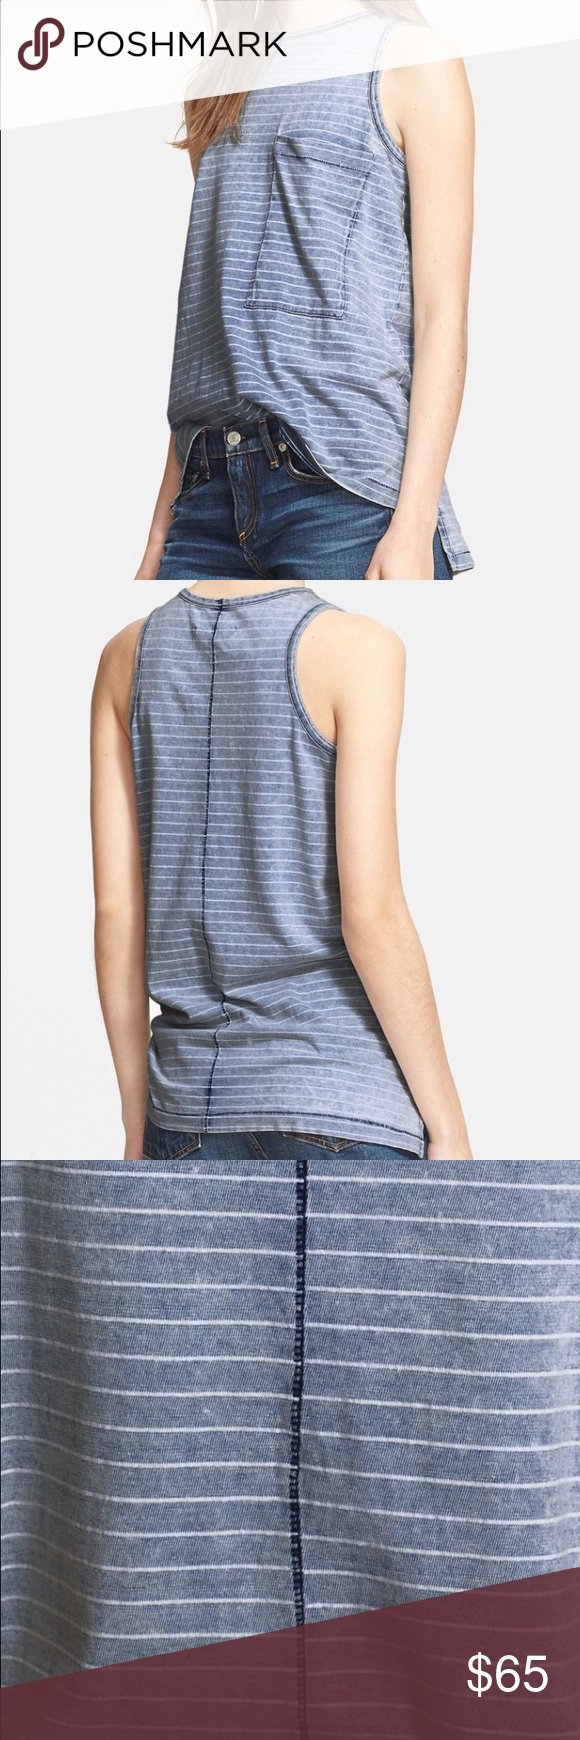 Rag u Bone Bowery Indigo Blue Stripe Top Tank S  rag u bone